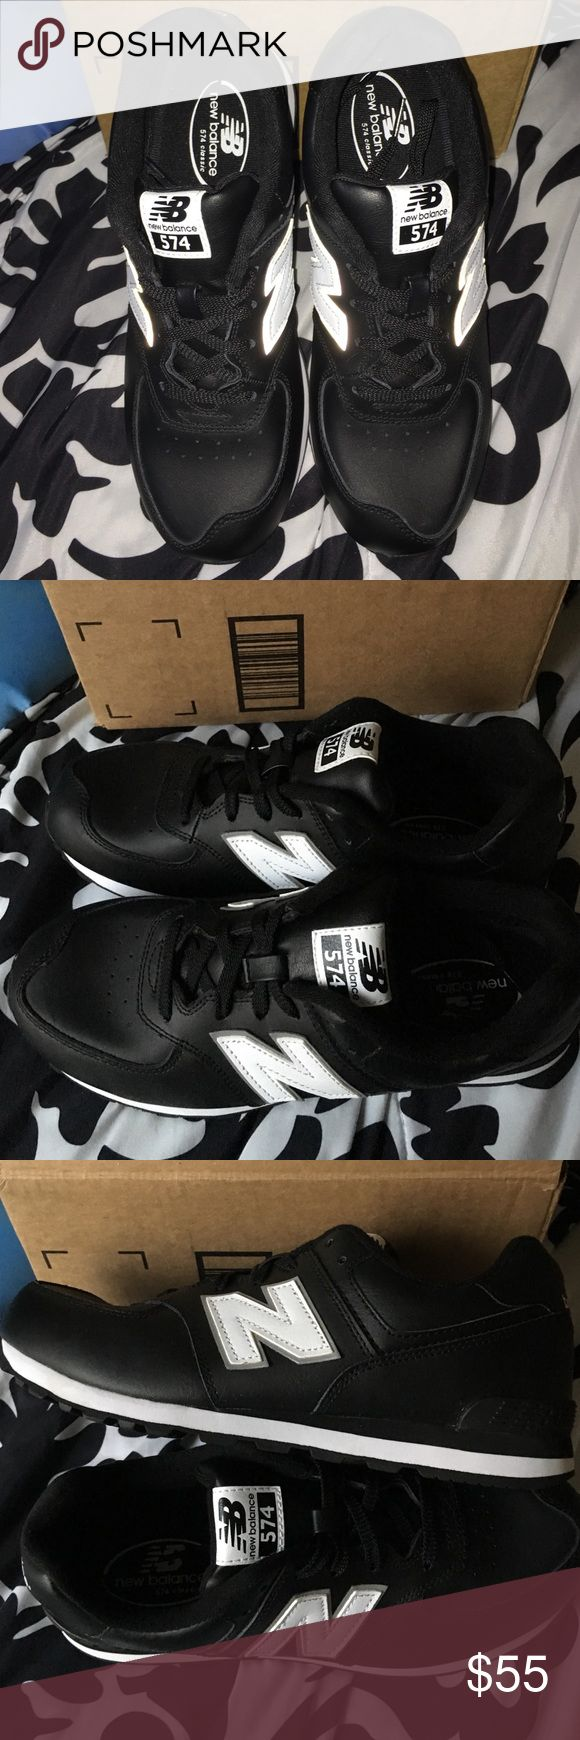 New balance 574 Classics Black with white N. No longer sold in stores. Shiny black material. New. Never used. Shoe box NOT included. Boys size 6. New Balance Shoes Athletic Shoes